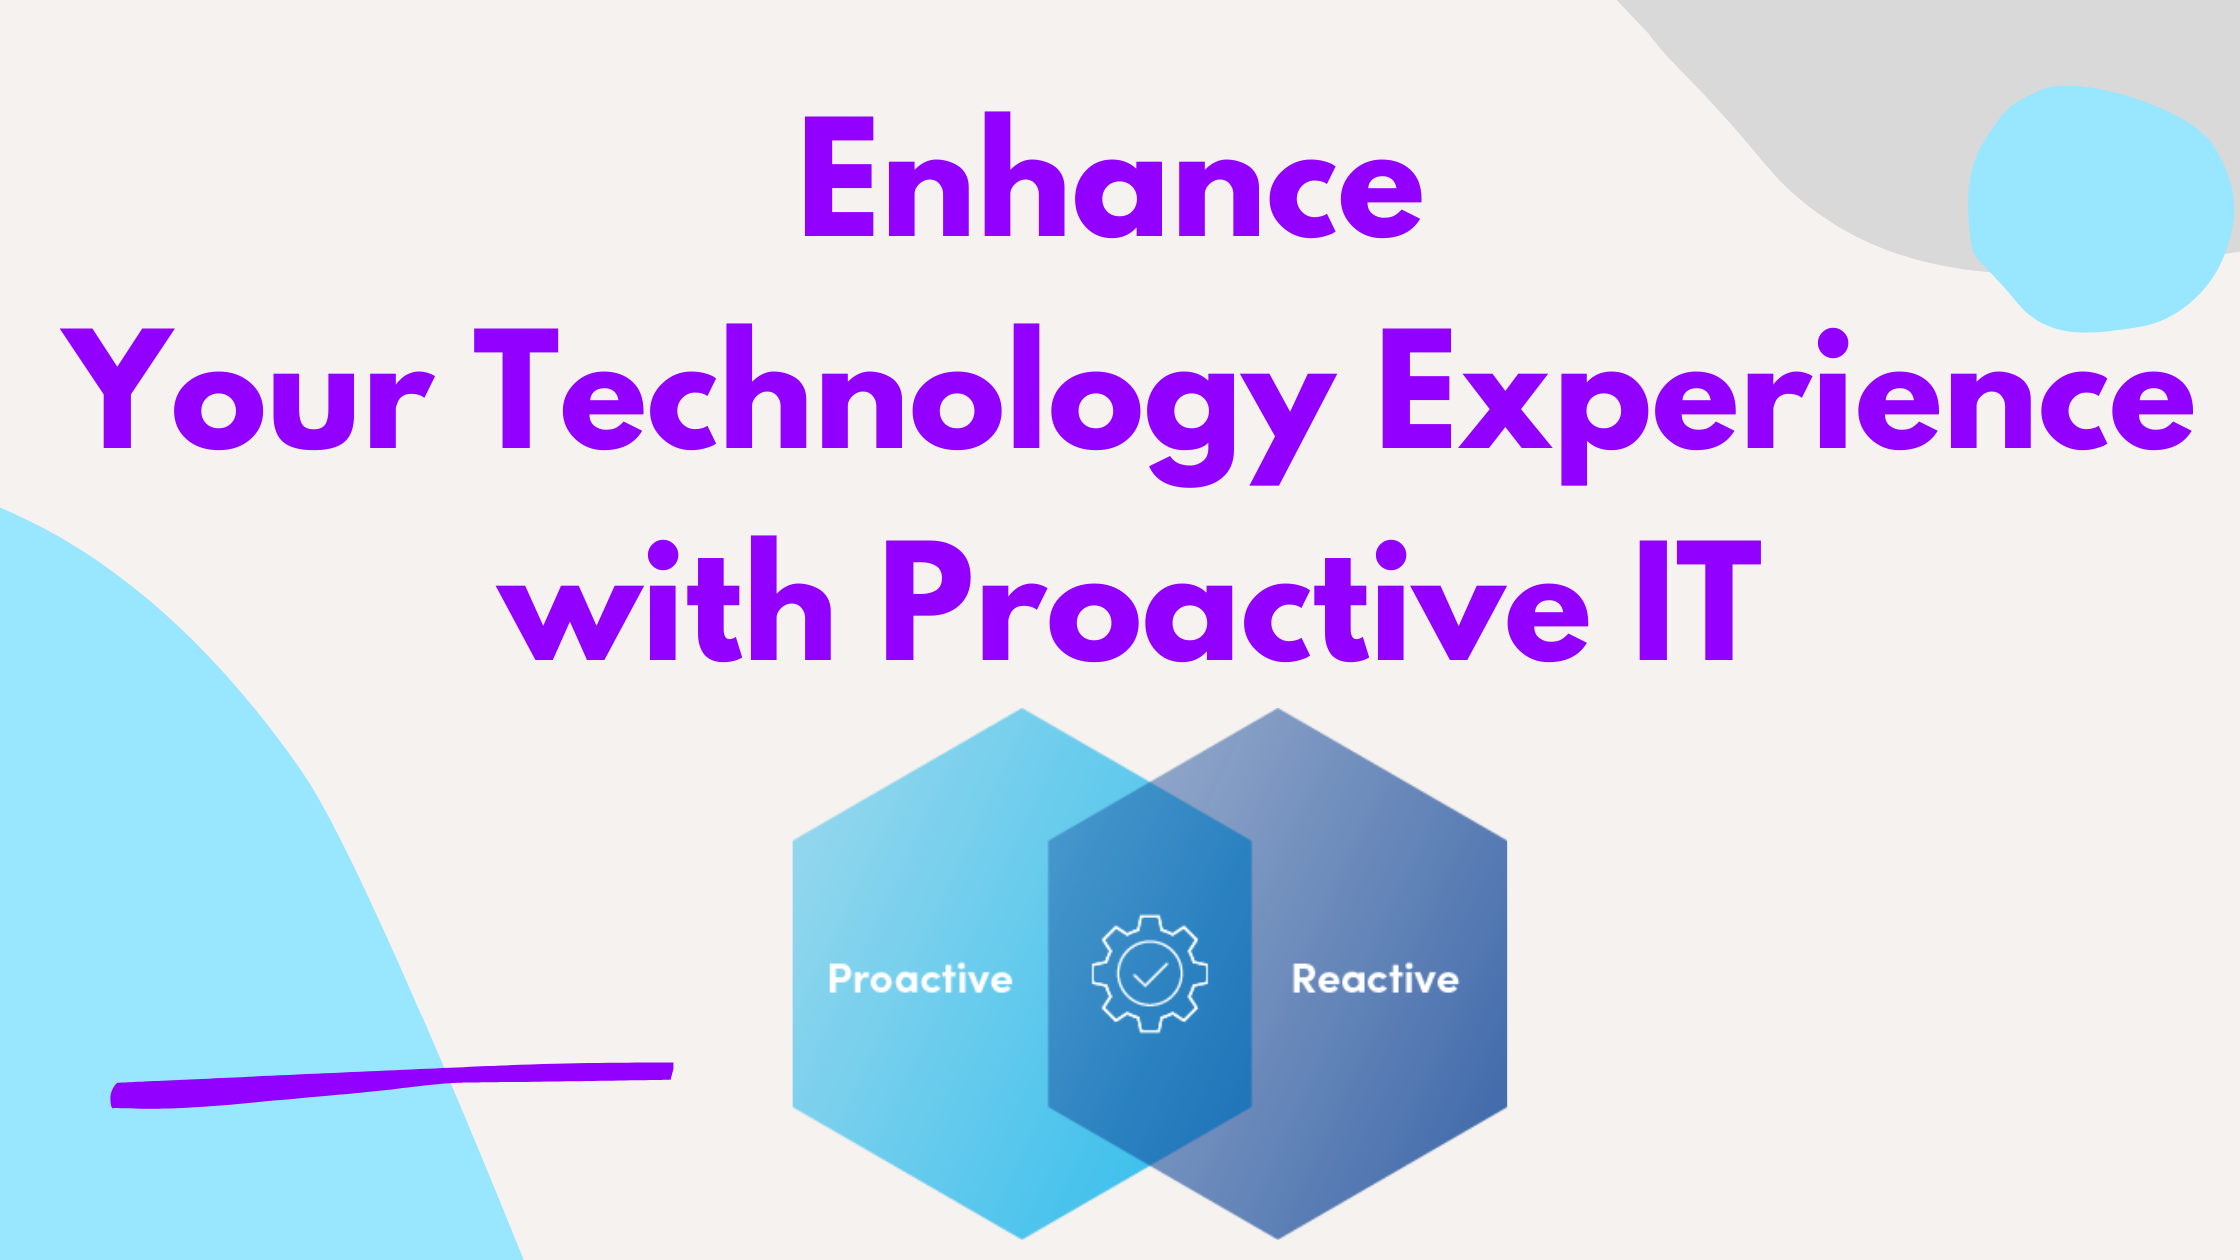 Enhance Your Technology Experience with Proactive IT